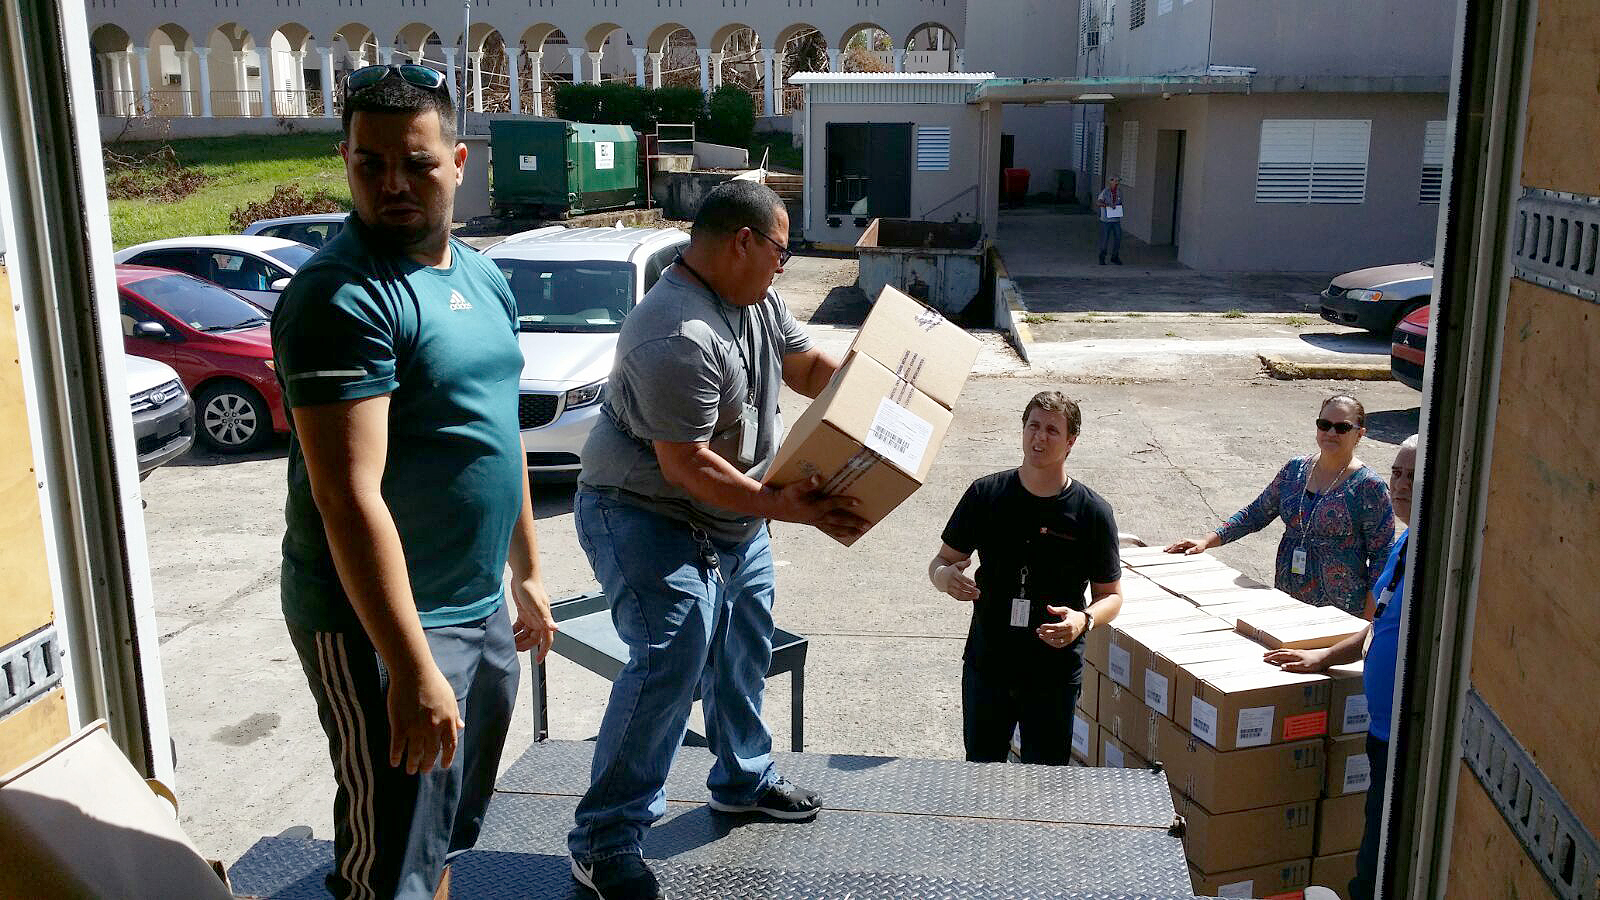 Insulin was delivered to secure storage locations around San Juan, including the Pueto Rico Department of Health on Wednesday. From there, the medicines will be distributed to health clinics and hospitals across the island treating patients with diabetes. (Gordon Willcock/Direct Relief)